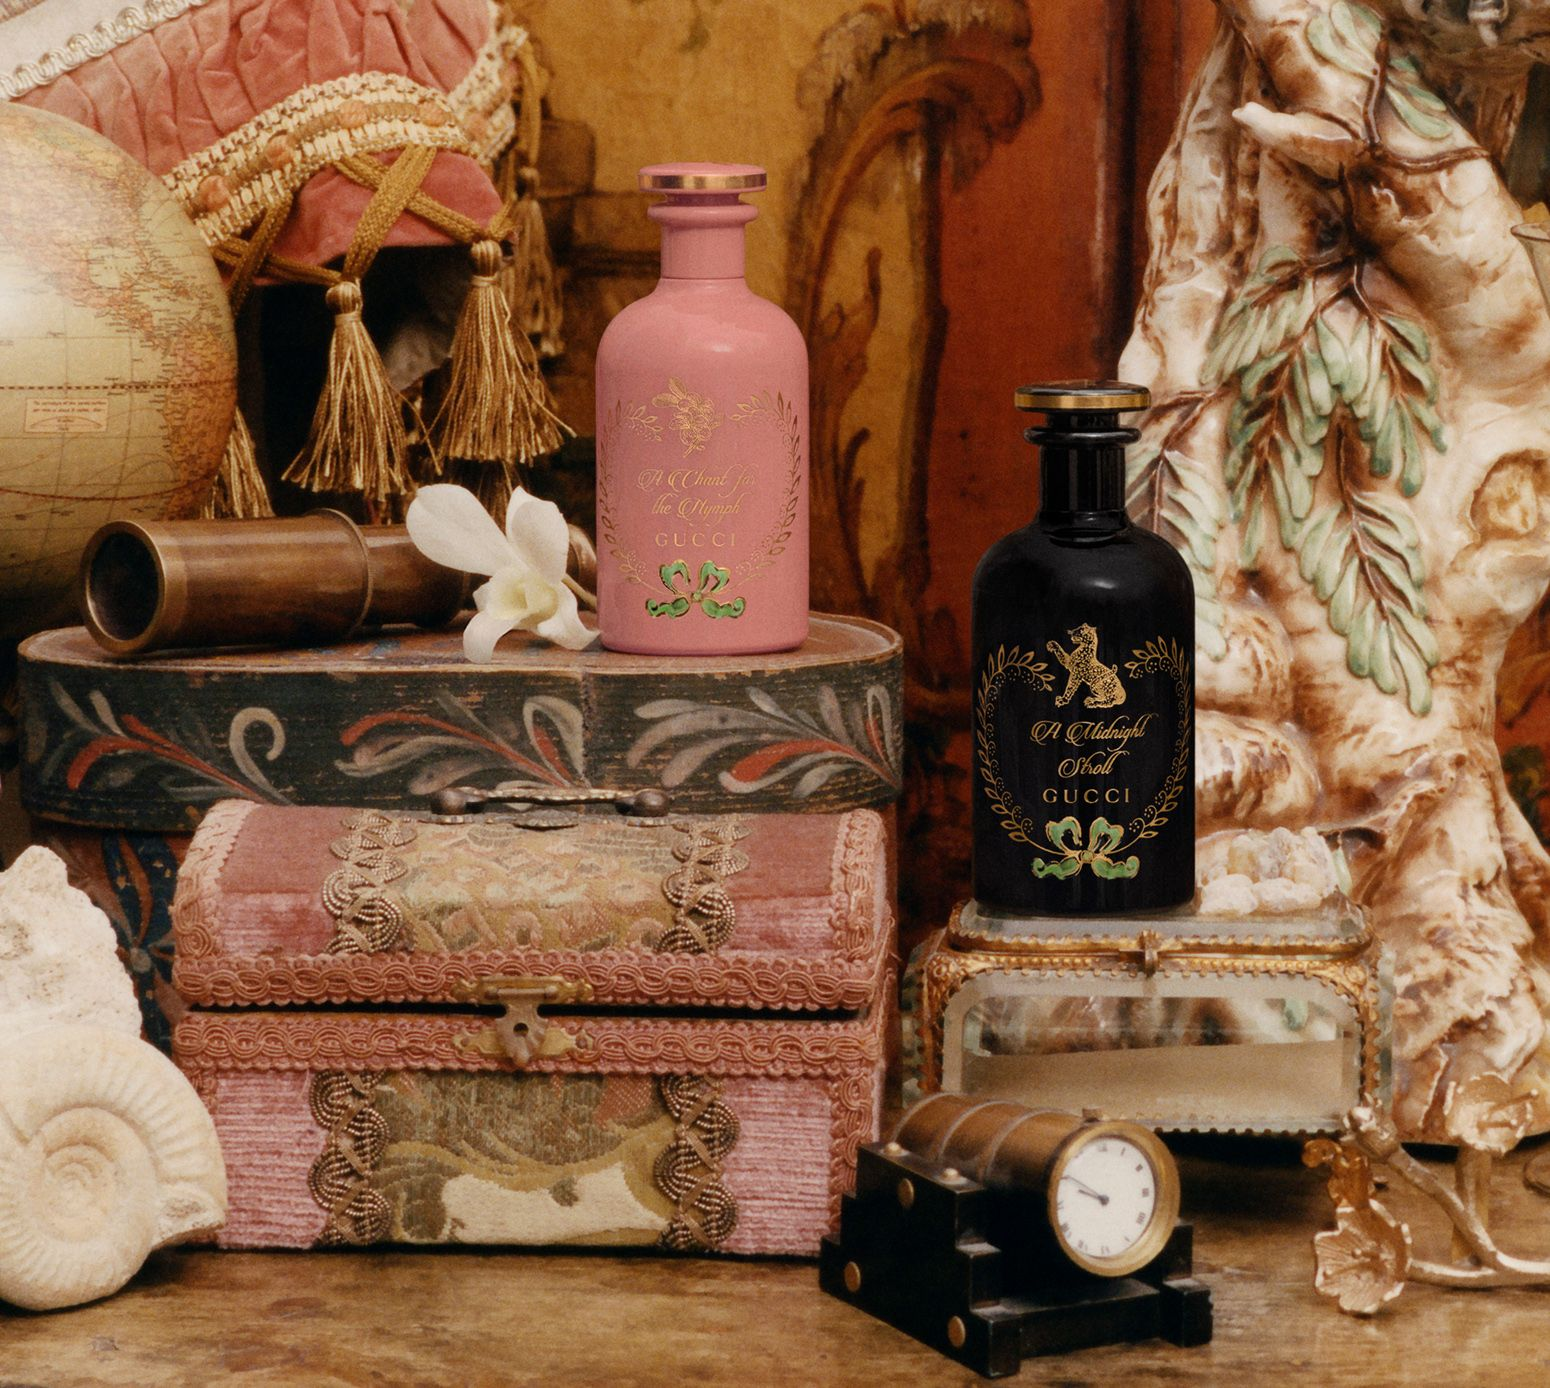 Gucci Expands The Alchemist's Garden With Two New Whimsical Scents